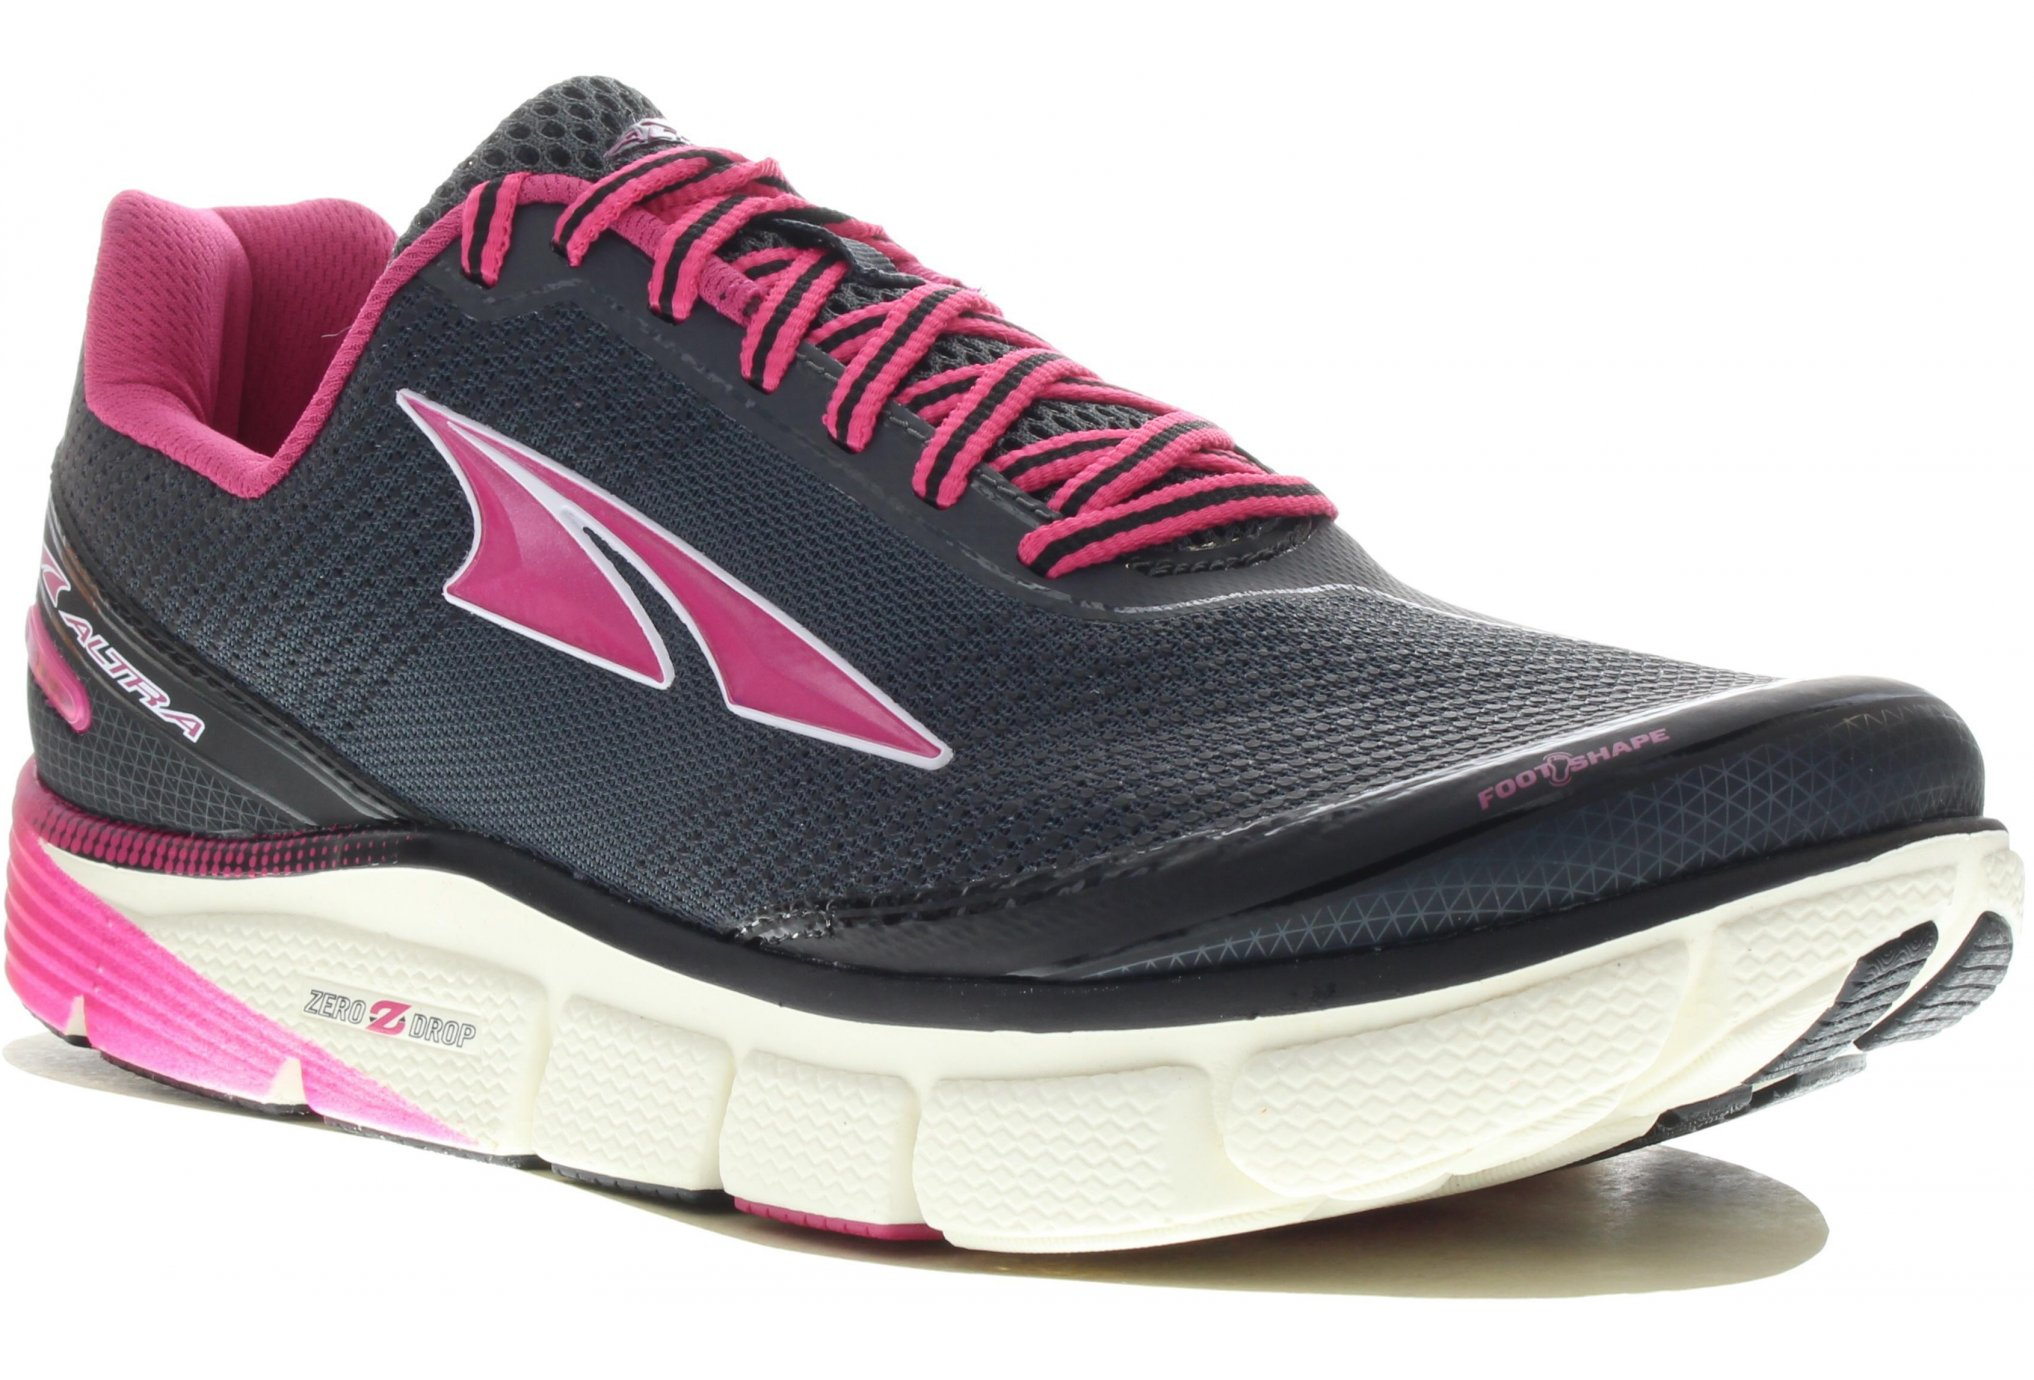 Trail W 5 Altra Torin Chaussures Session 2 Running Femme w8On0Pk